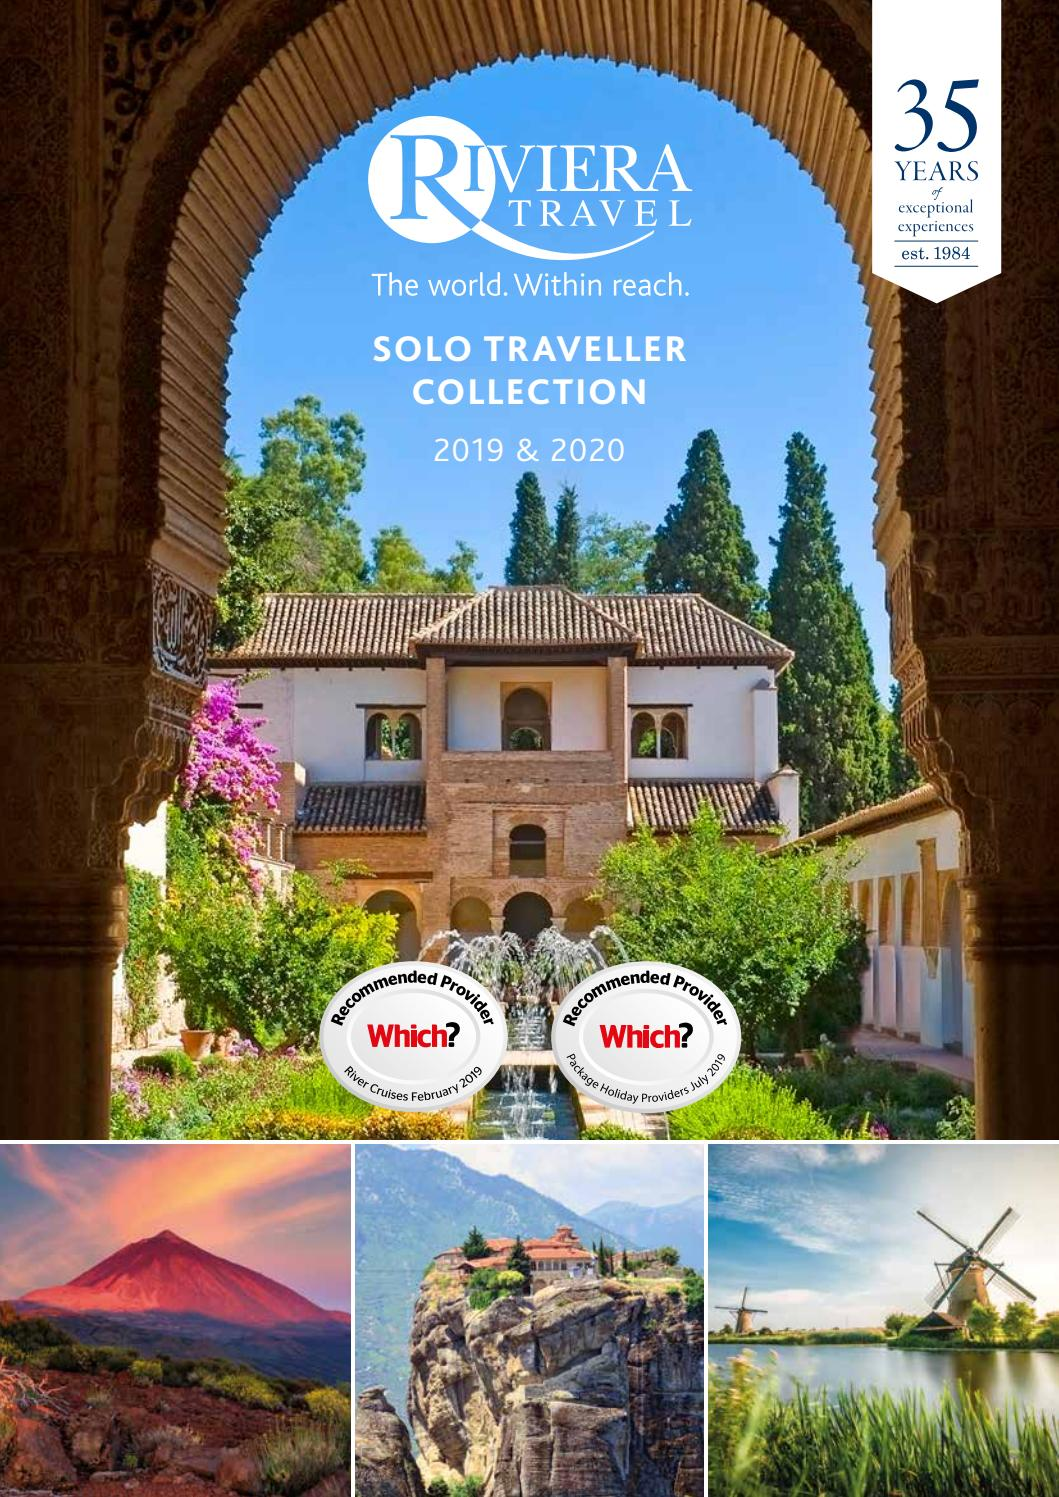 solo traveller collection 2019 2020